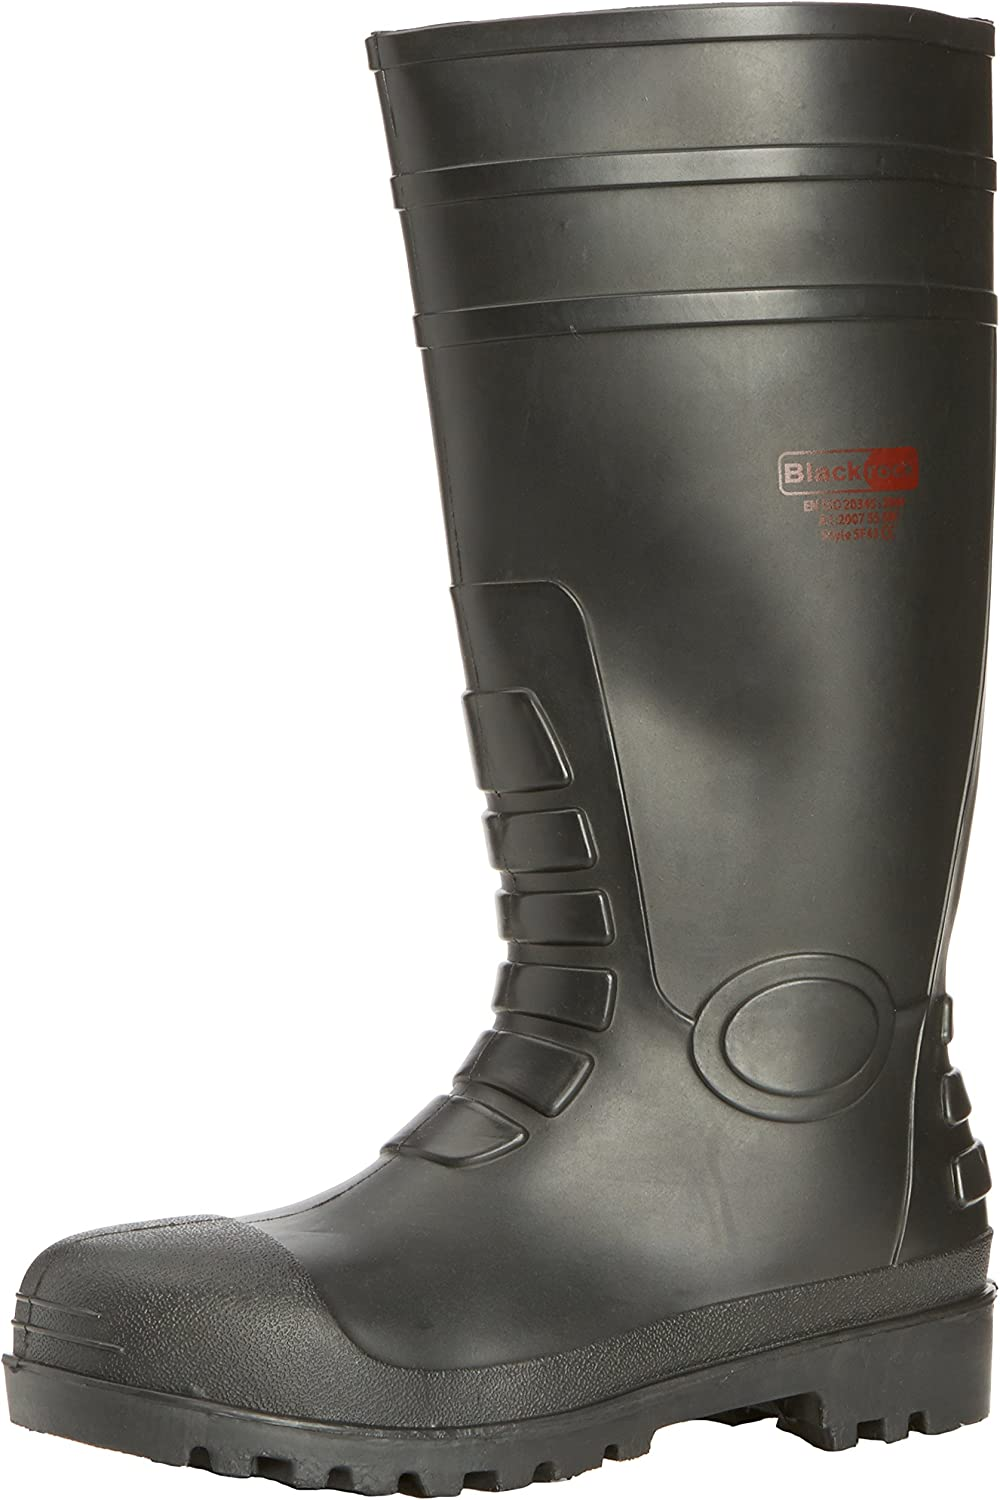 Blackrock Size 13 Safety Wellington SF4313